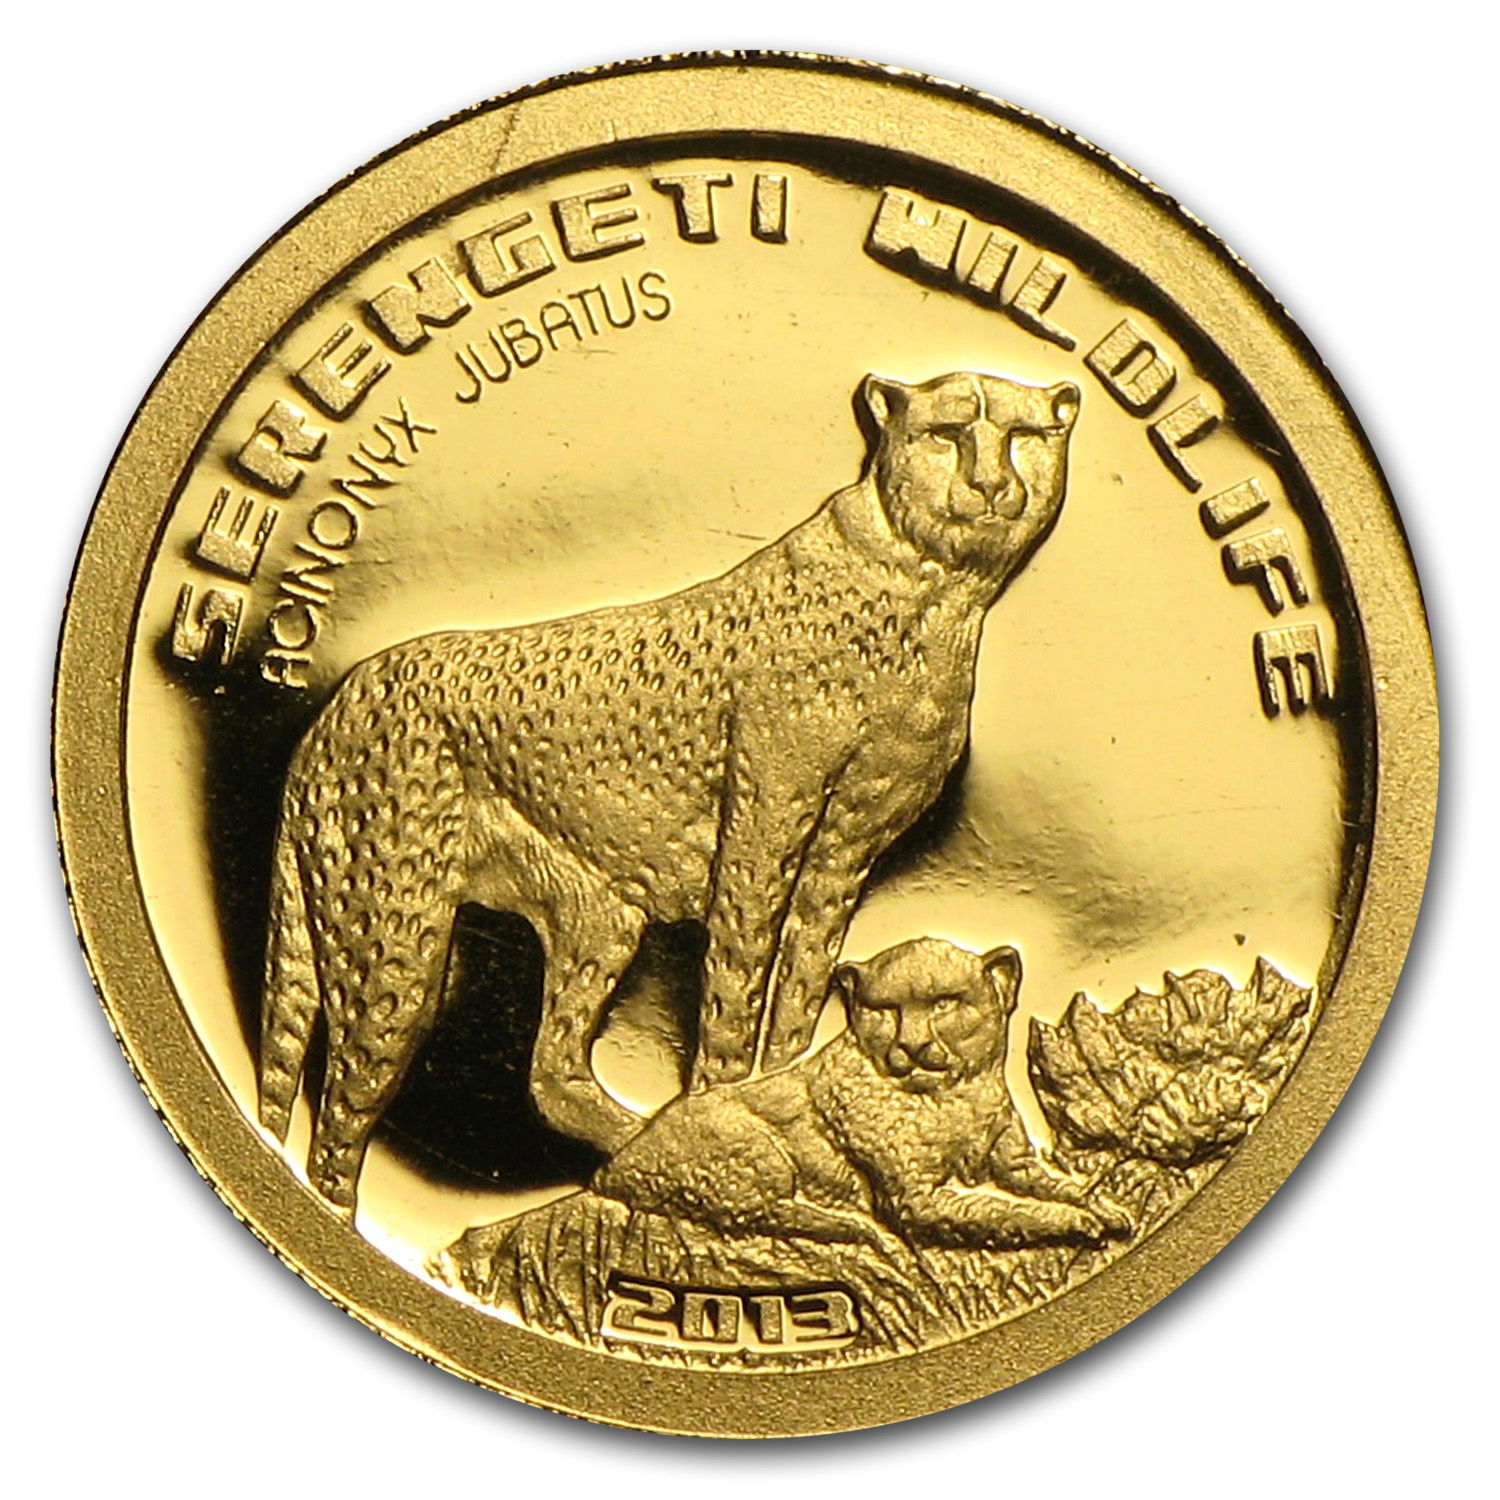 2013 Tanzania 1/2 gram Gold Serengeti Wildlife Cheetah